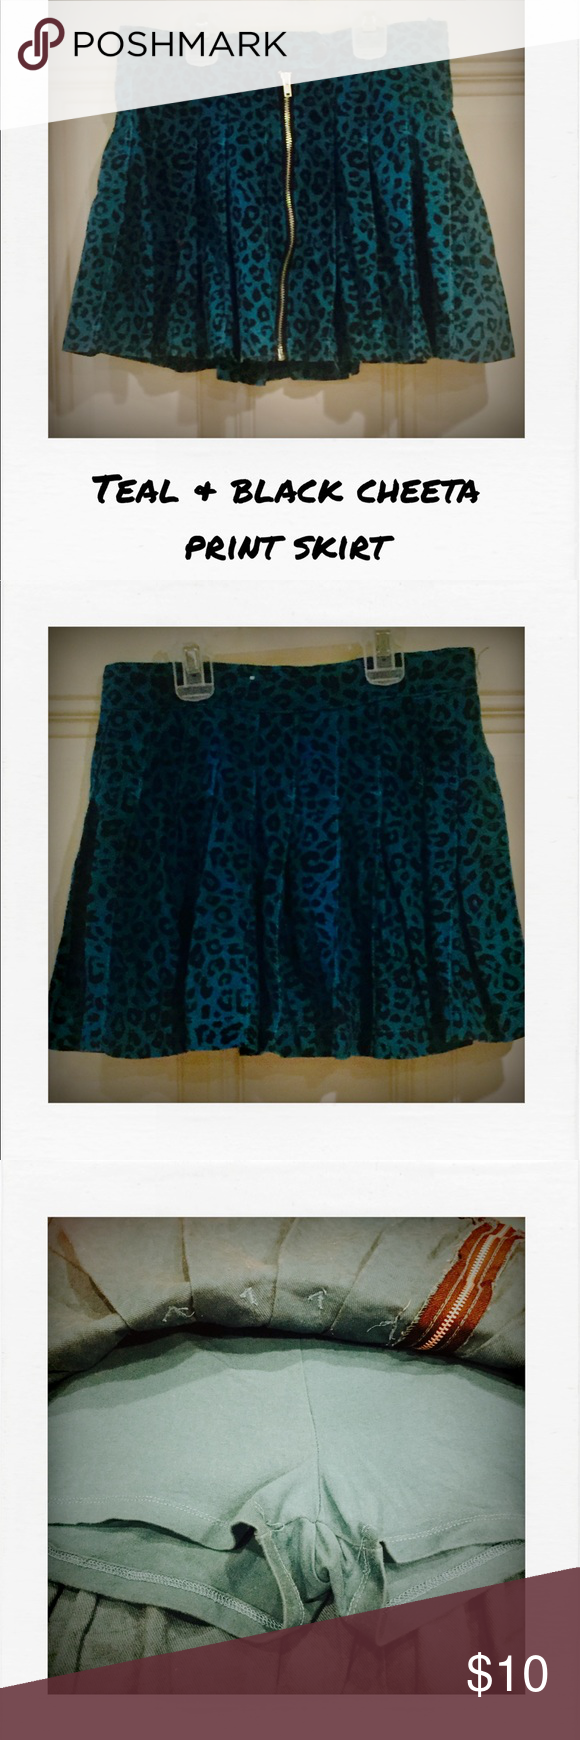 NWT TEAL & BLACK CHEETA PRINT SKIRT!!! Never worn! Adorable teal & black cheetah print skirt from The Children's Place. Has a zipper on the front . Adjustable elastic on the inside waist line. Size 10 The Children's Place Bottoms Skirts